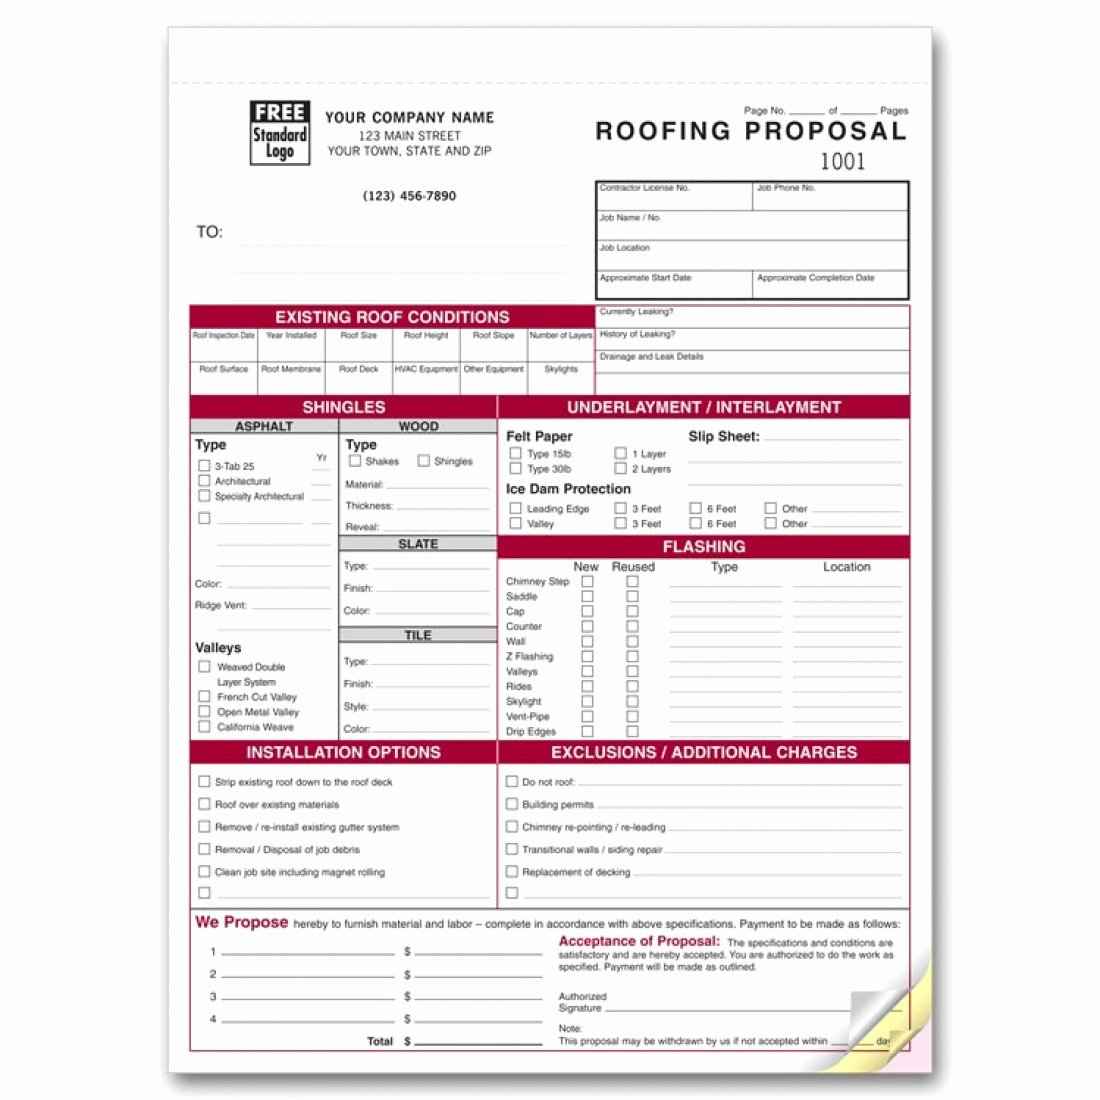 Free Residential Roofing Contract Template Unique Detailed Roofing Proposal forms 6566 at Print Ez